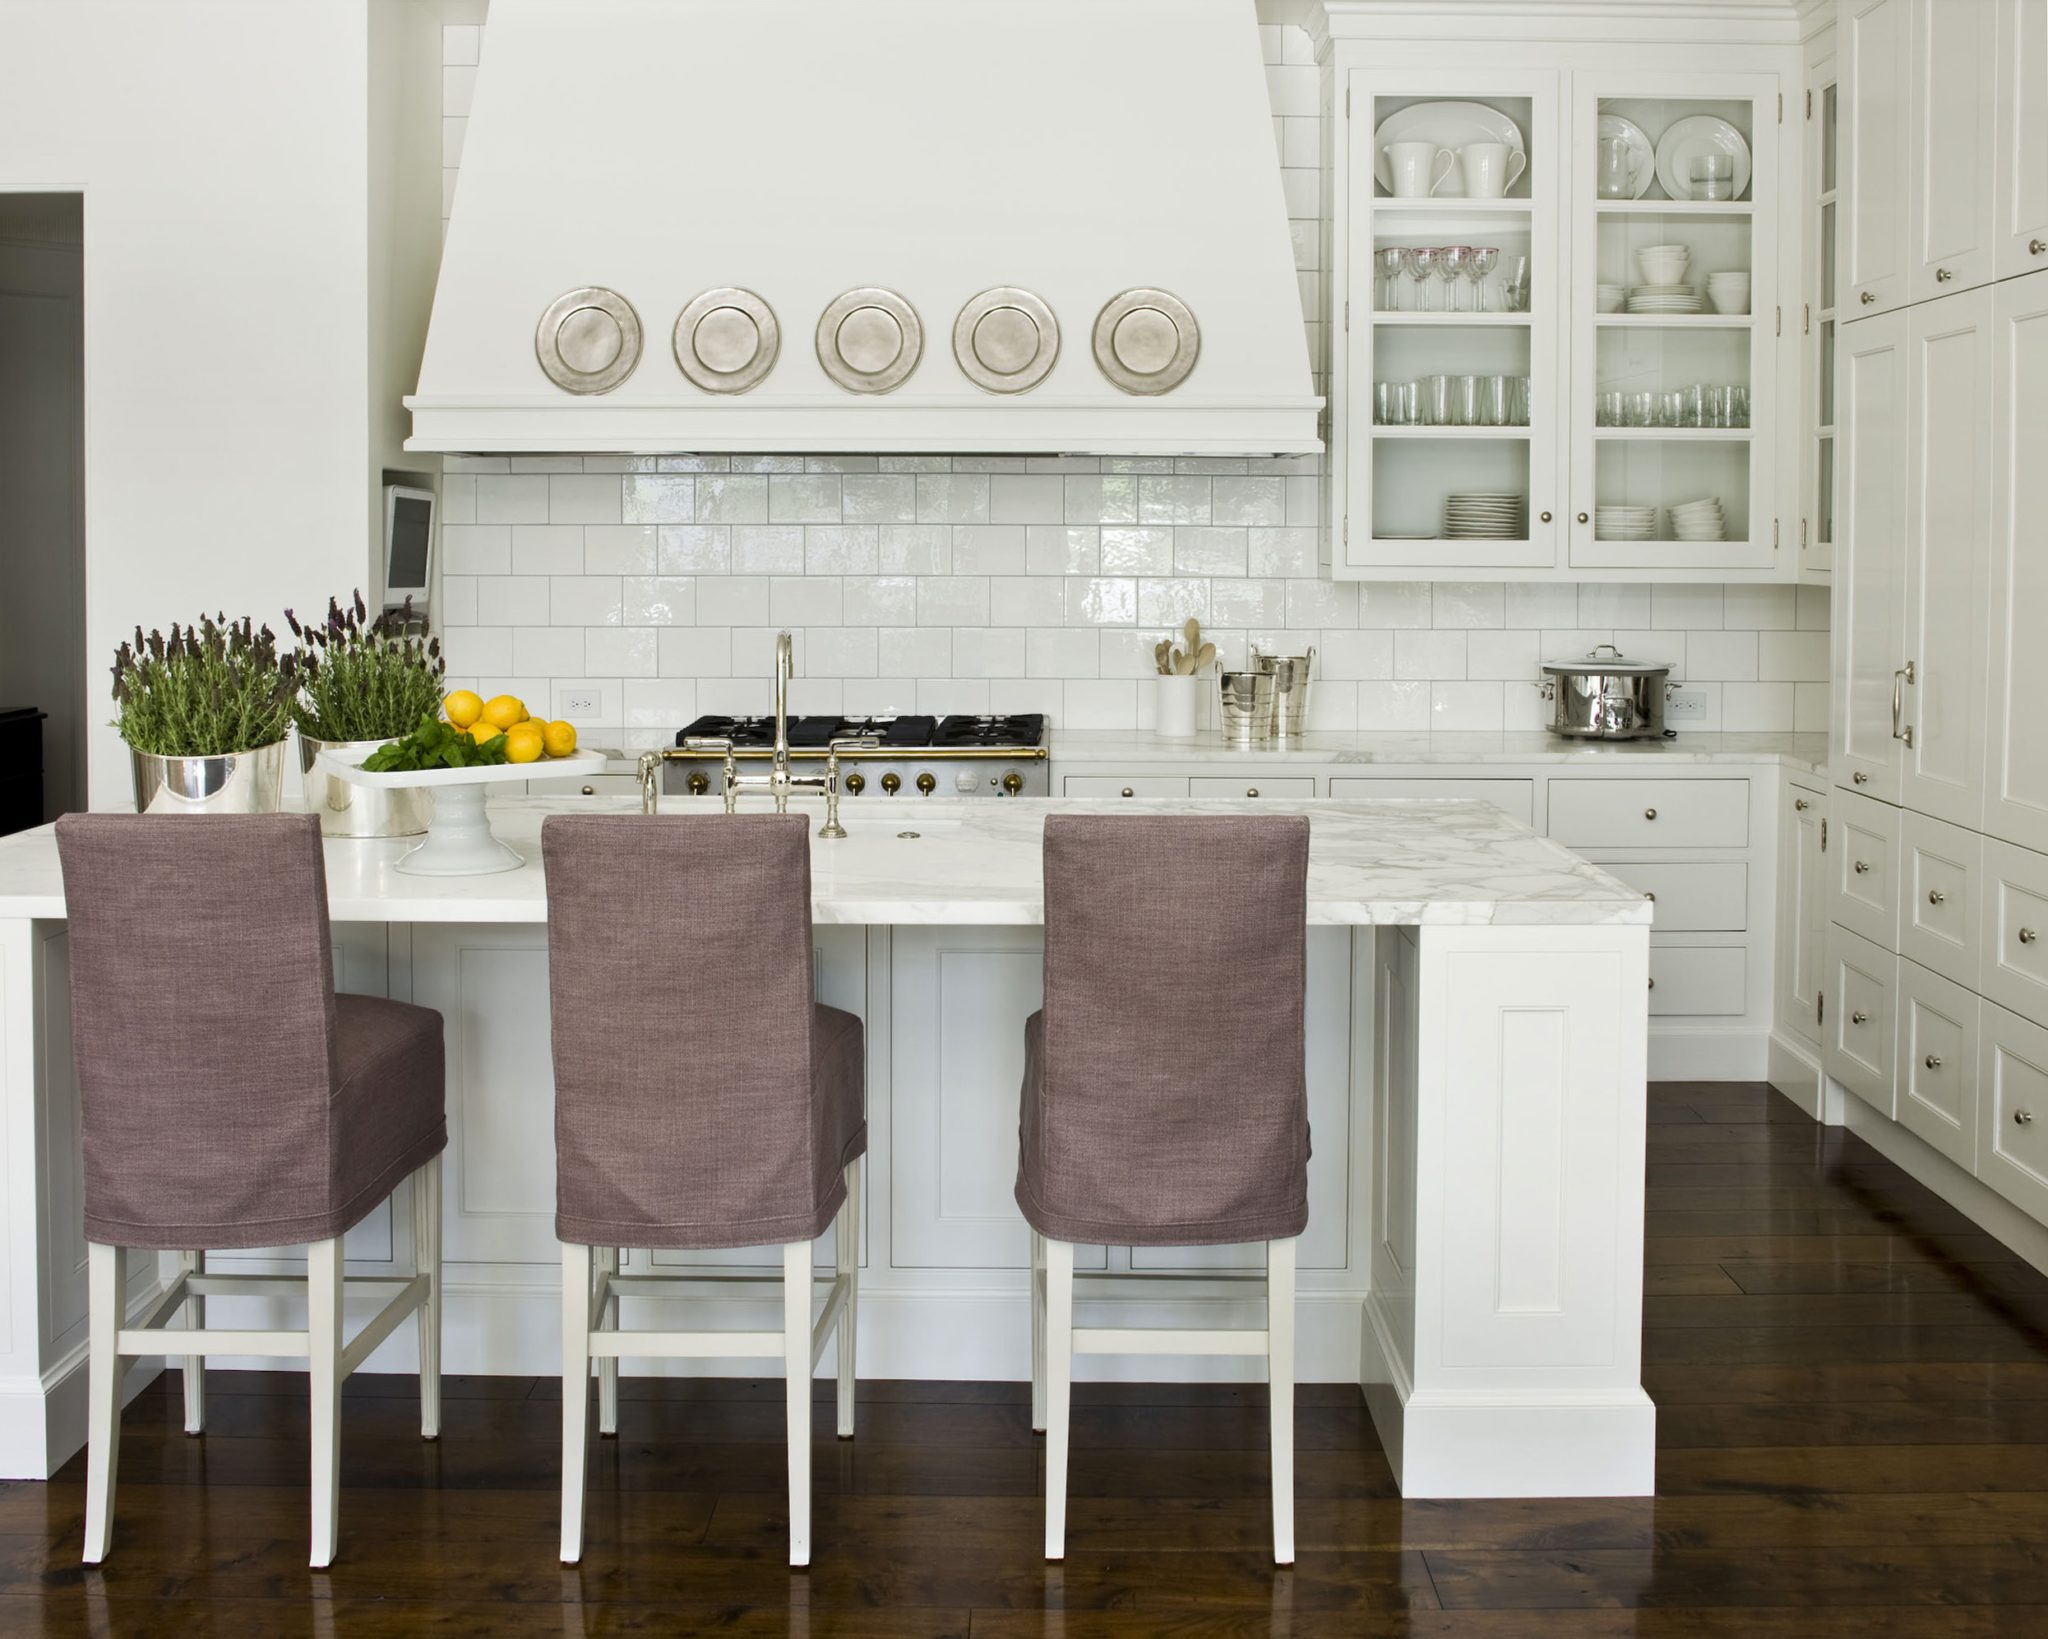 At Home kitchen with subway tile, breakfast bar by Suzanne Kasler Interiors